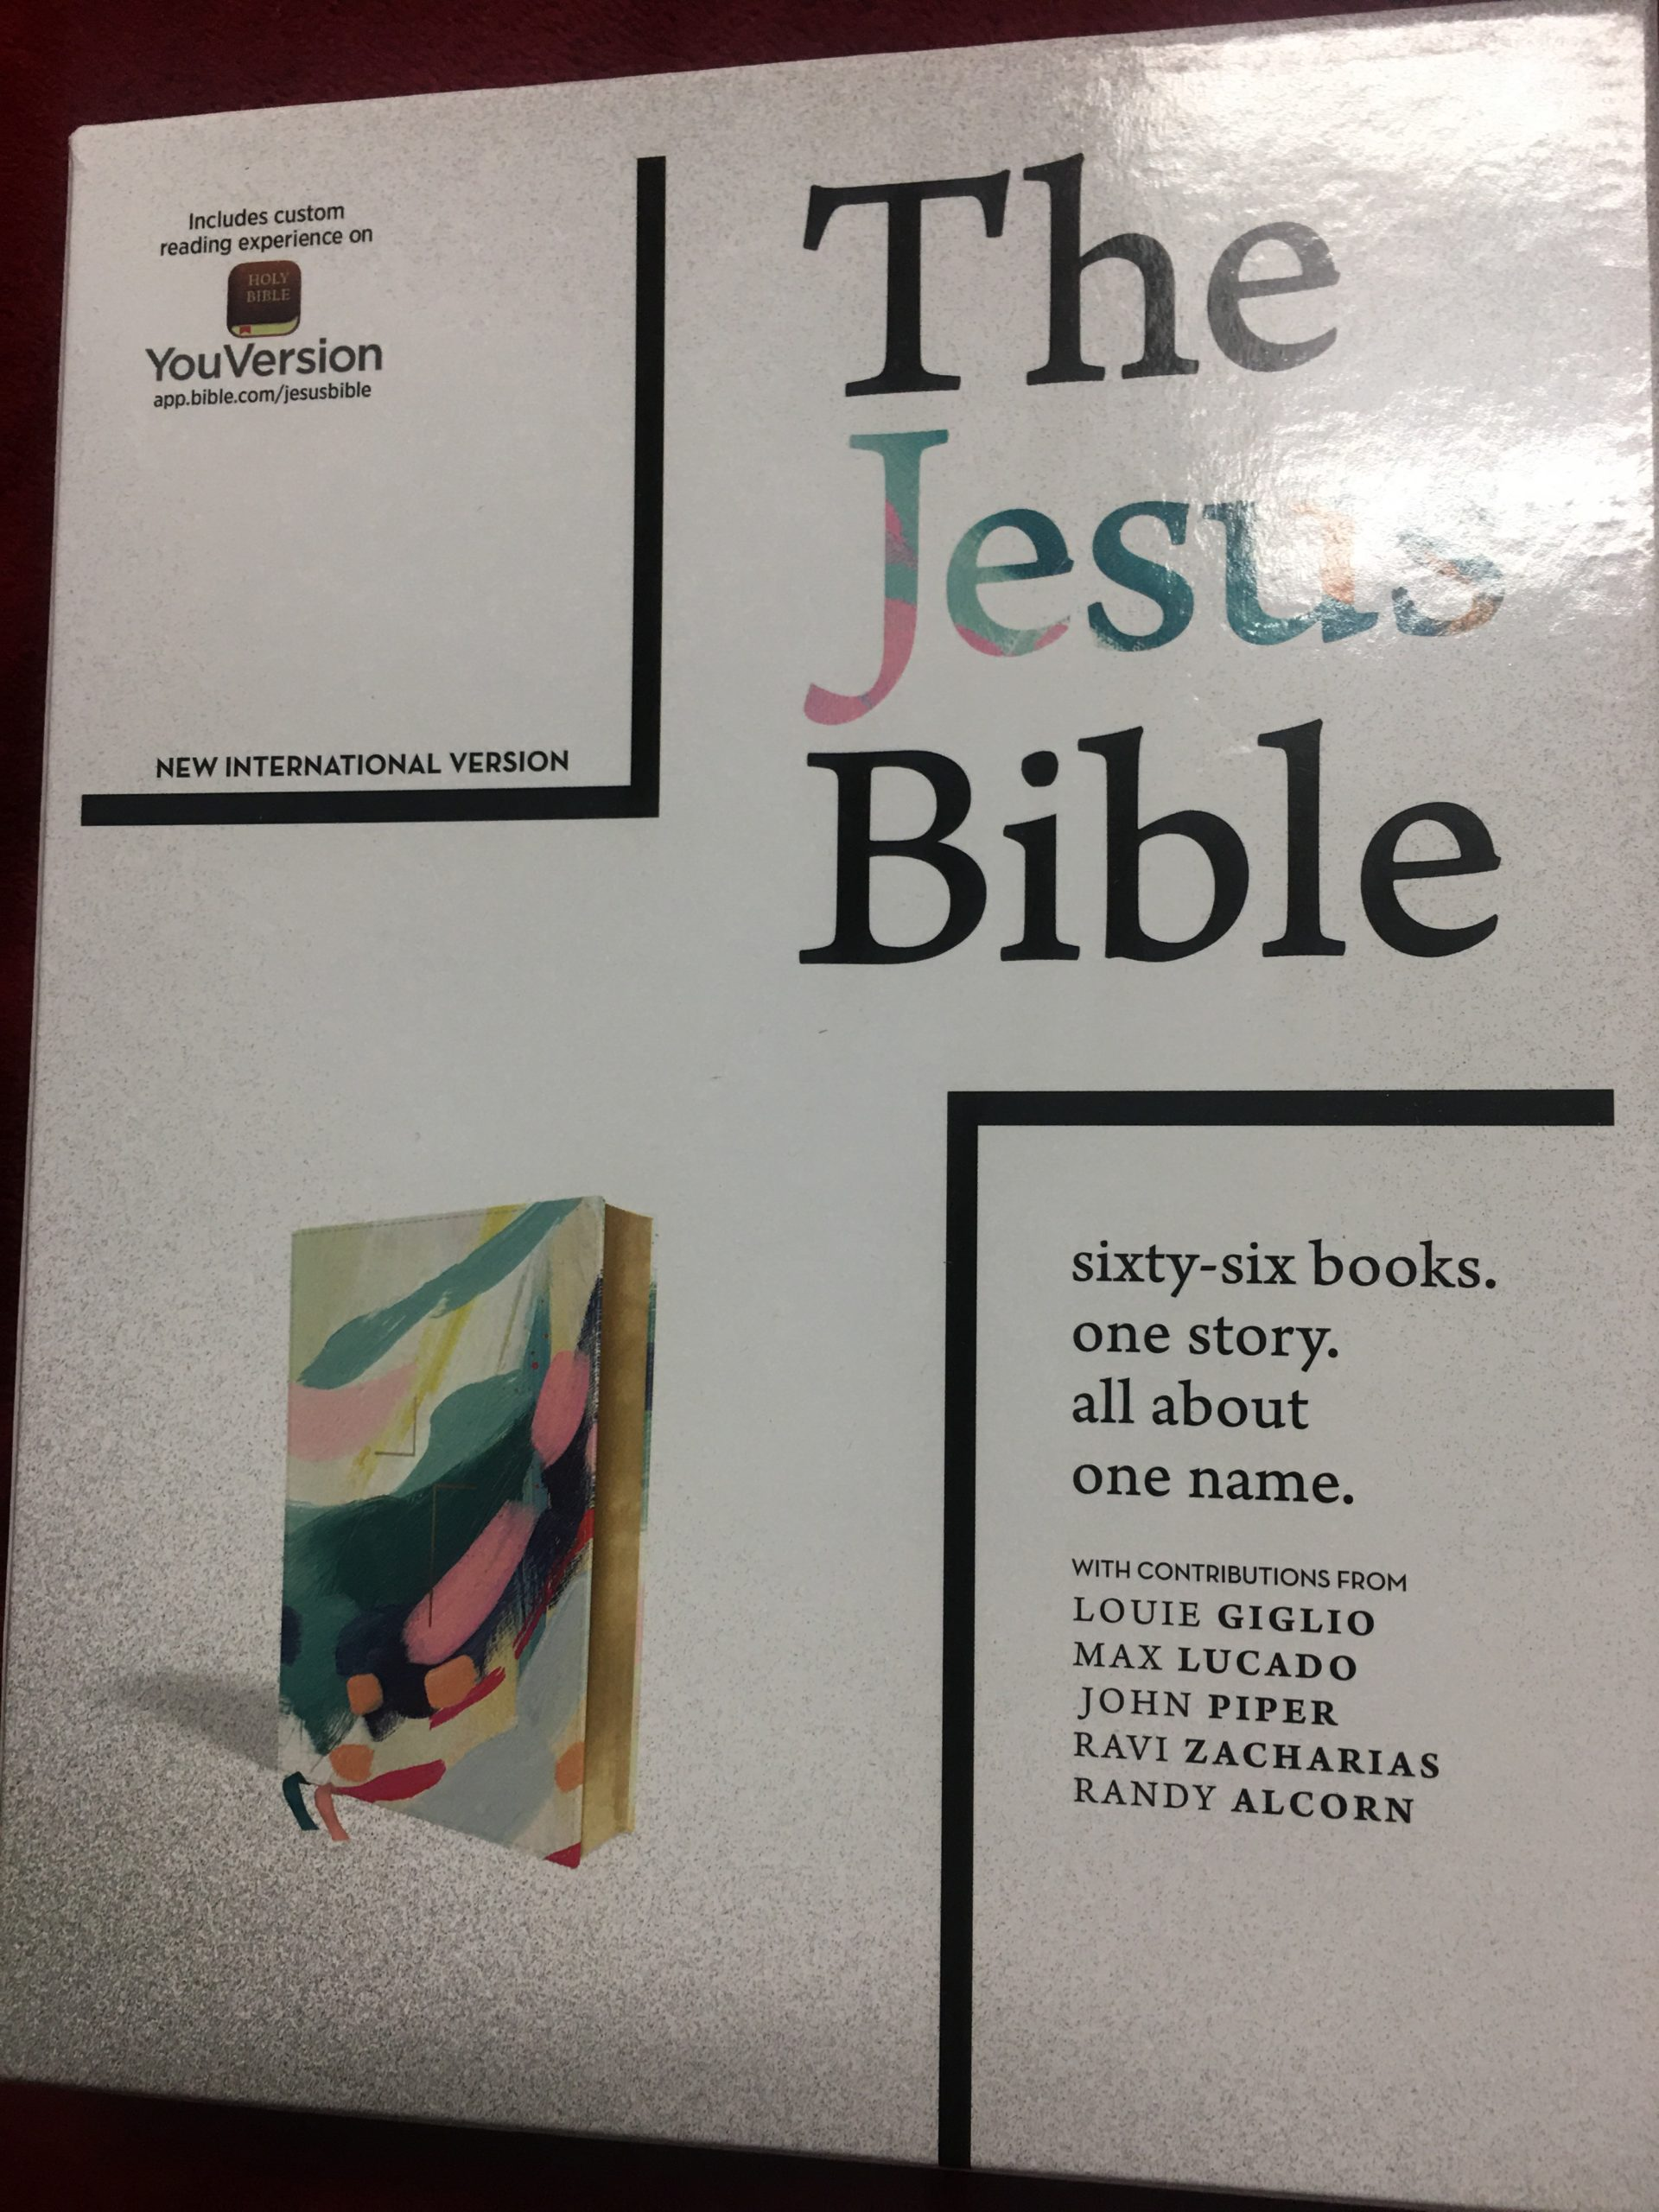 The Jesus Bible Artist Edition Review. A review of the Zondervan Bible. #BibleGatewayPartner #BGBG2